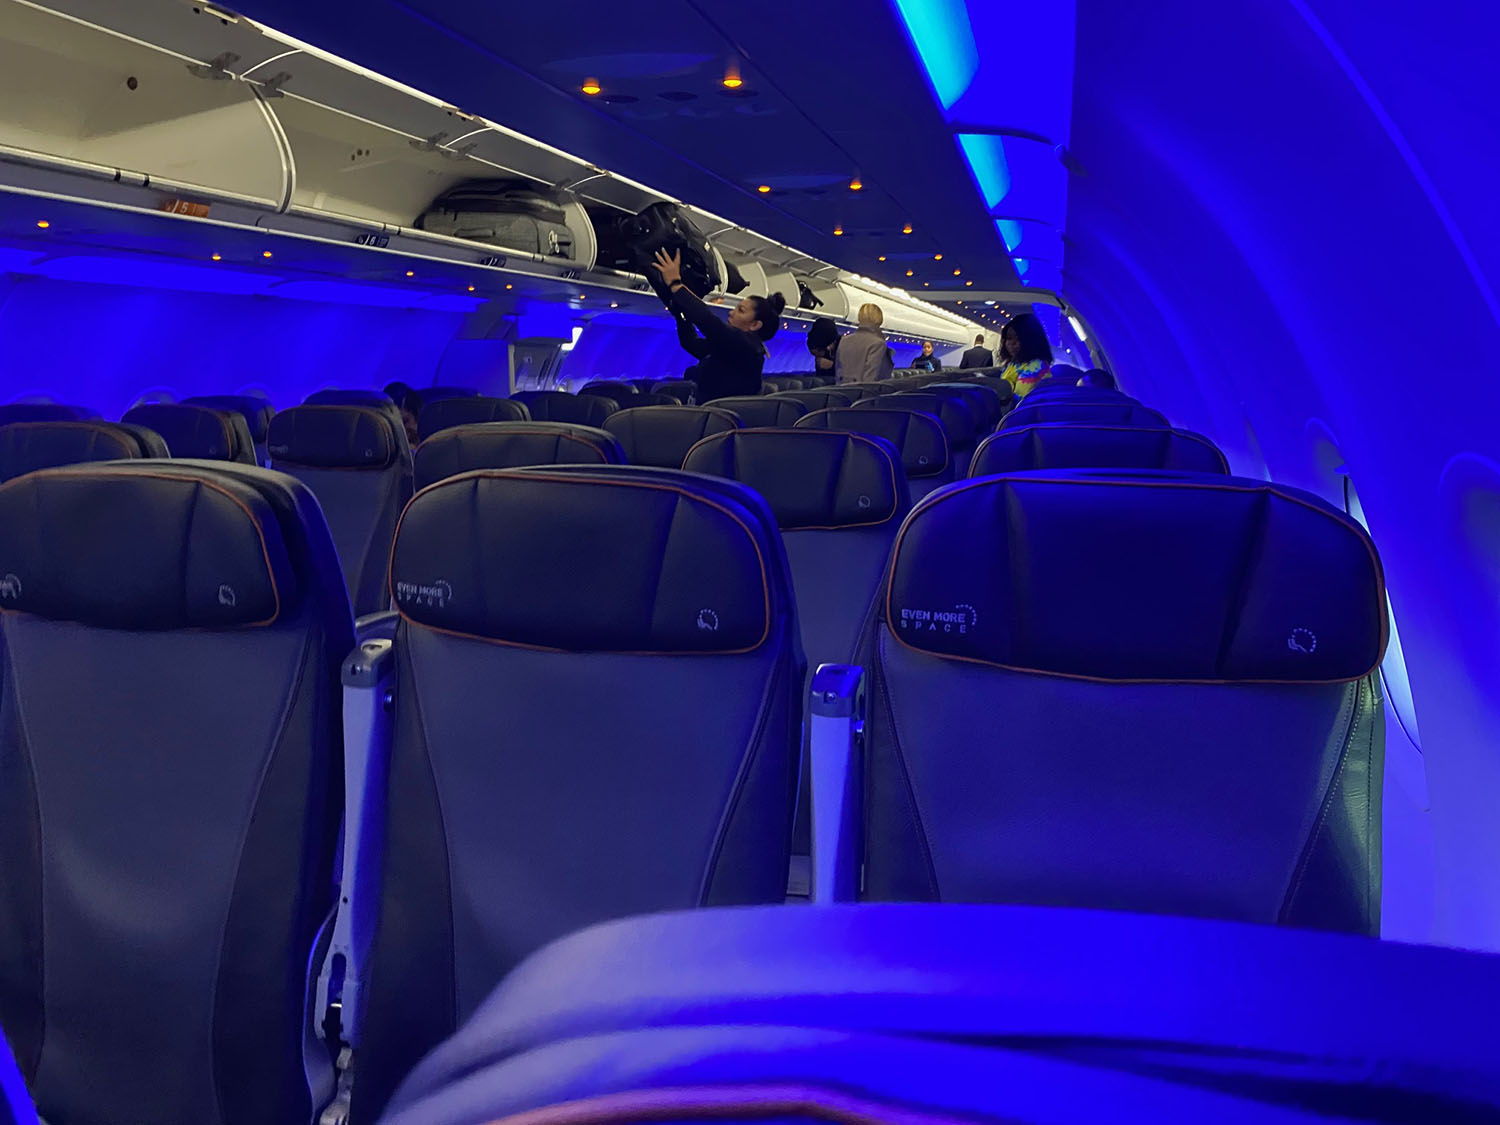 Airline Industry In Free Fall Amid COVID-19 Pandemic